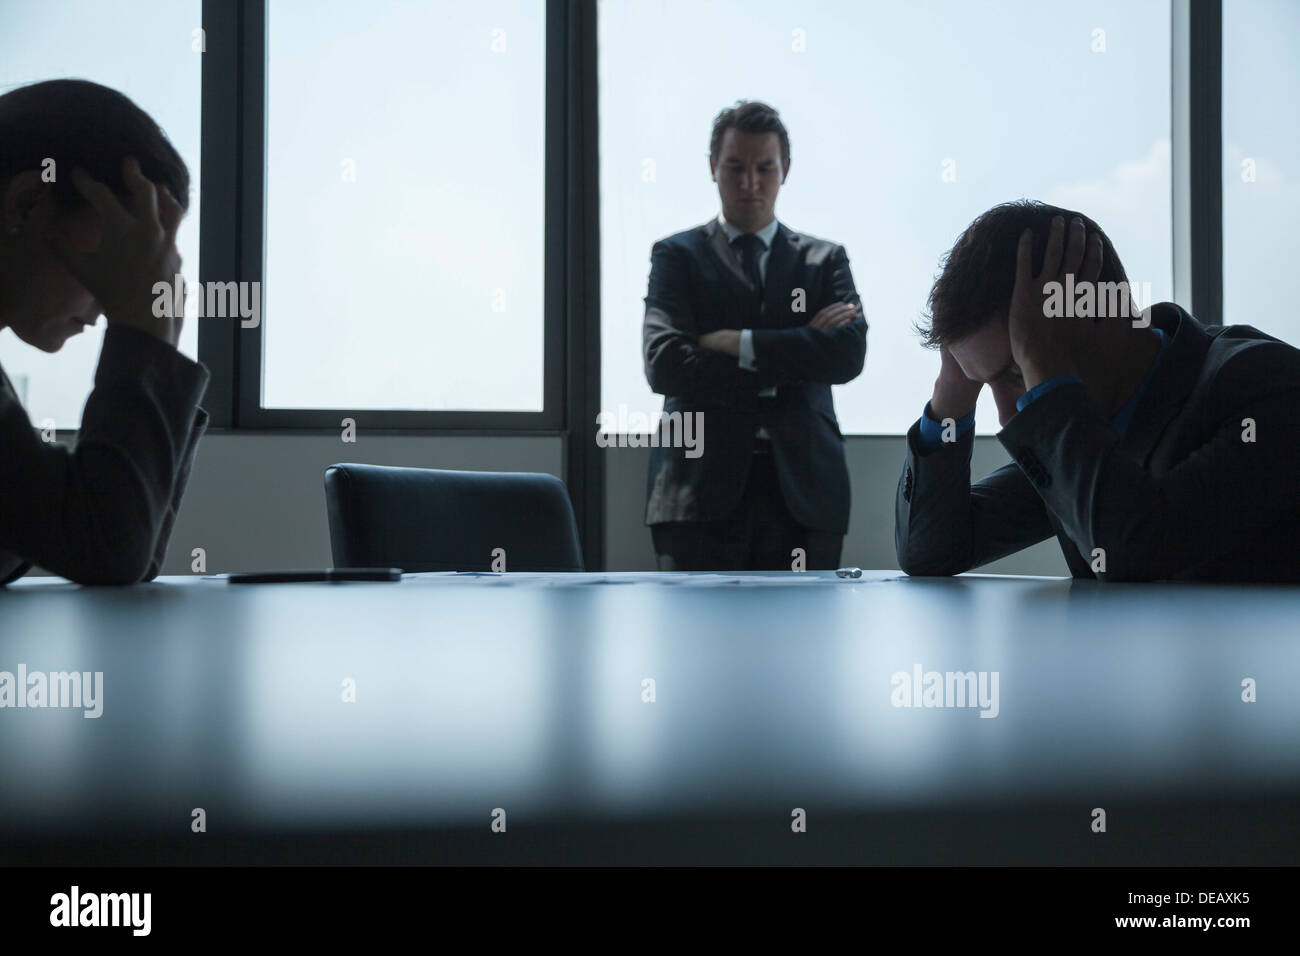 Three frustrated and overworked business people in the board room with arms crossed and head in hands. - Stock Image